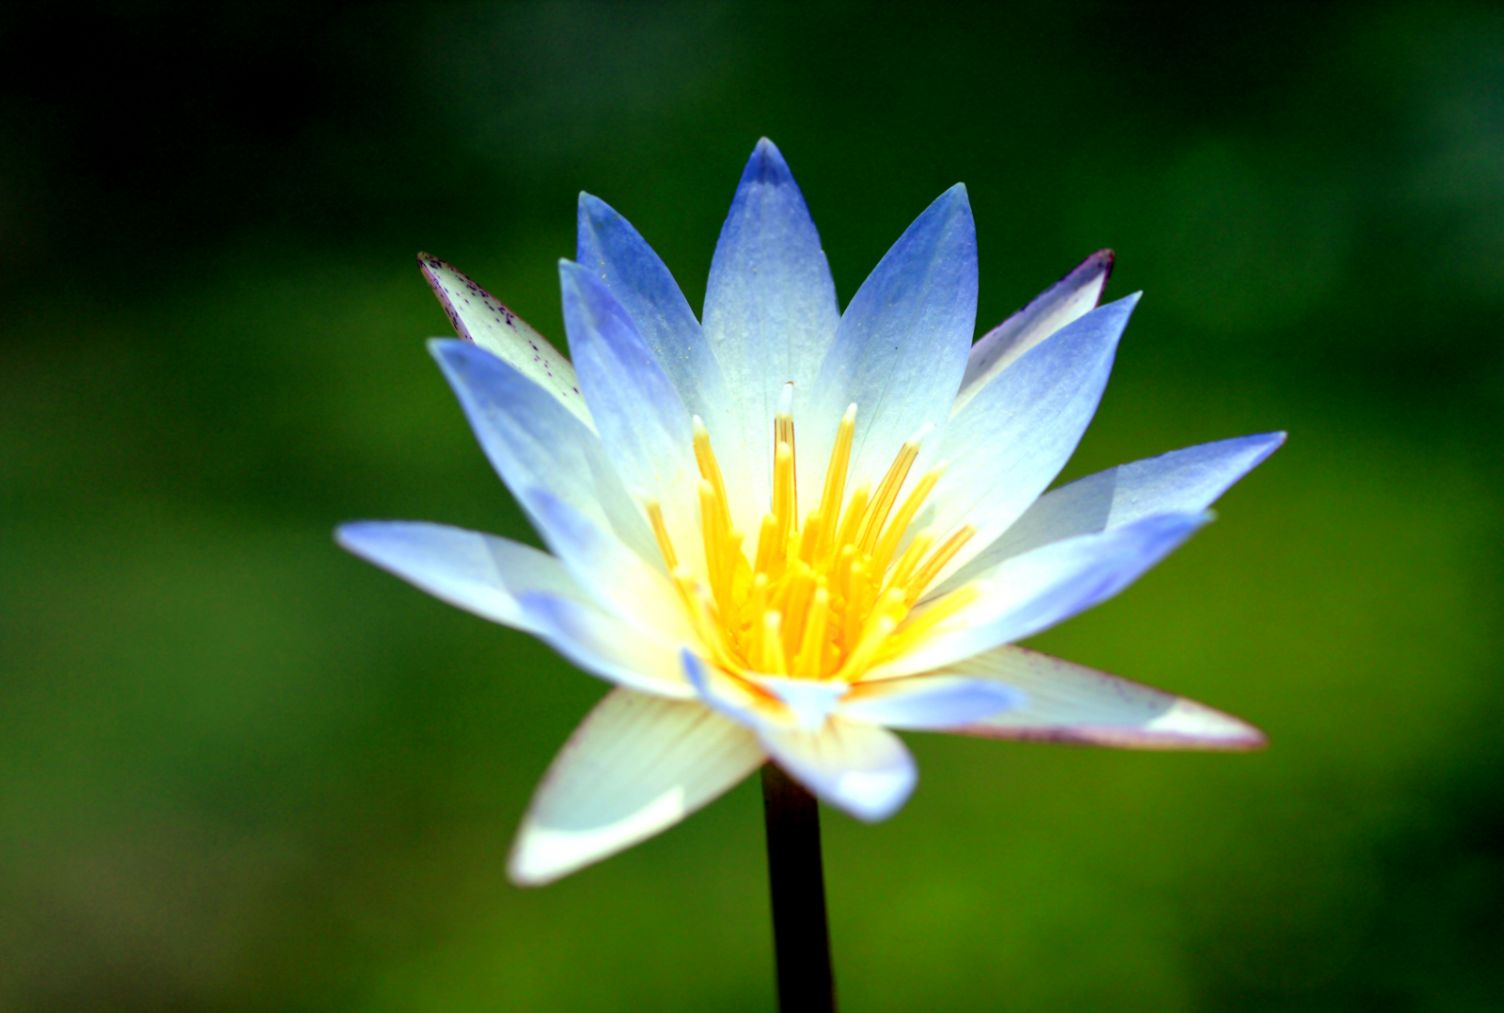 Lotus Flower Photos Free Download Best Image Background